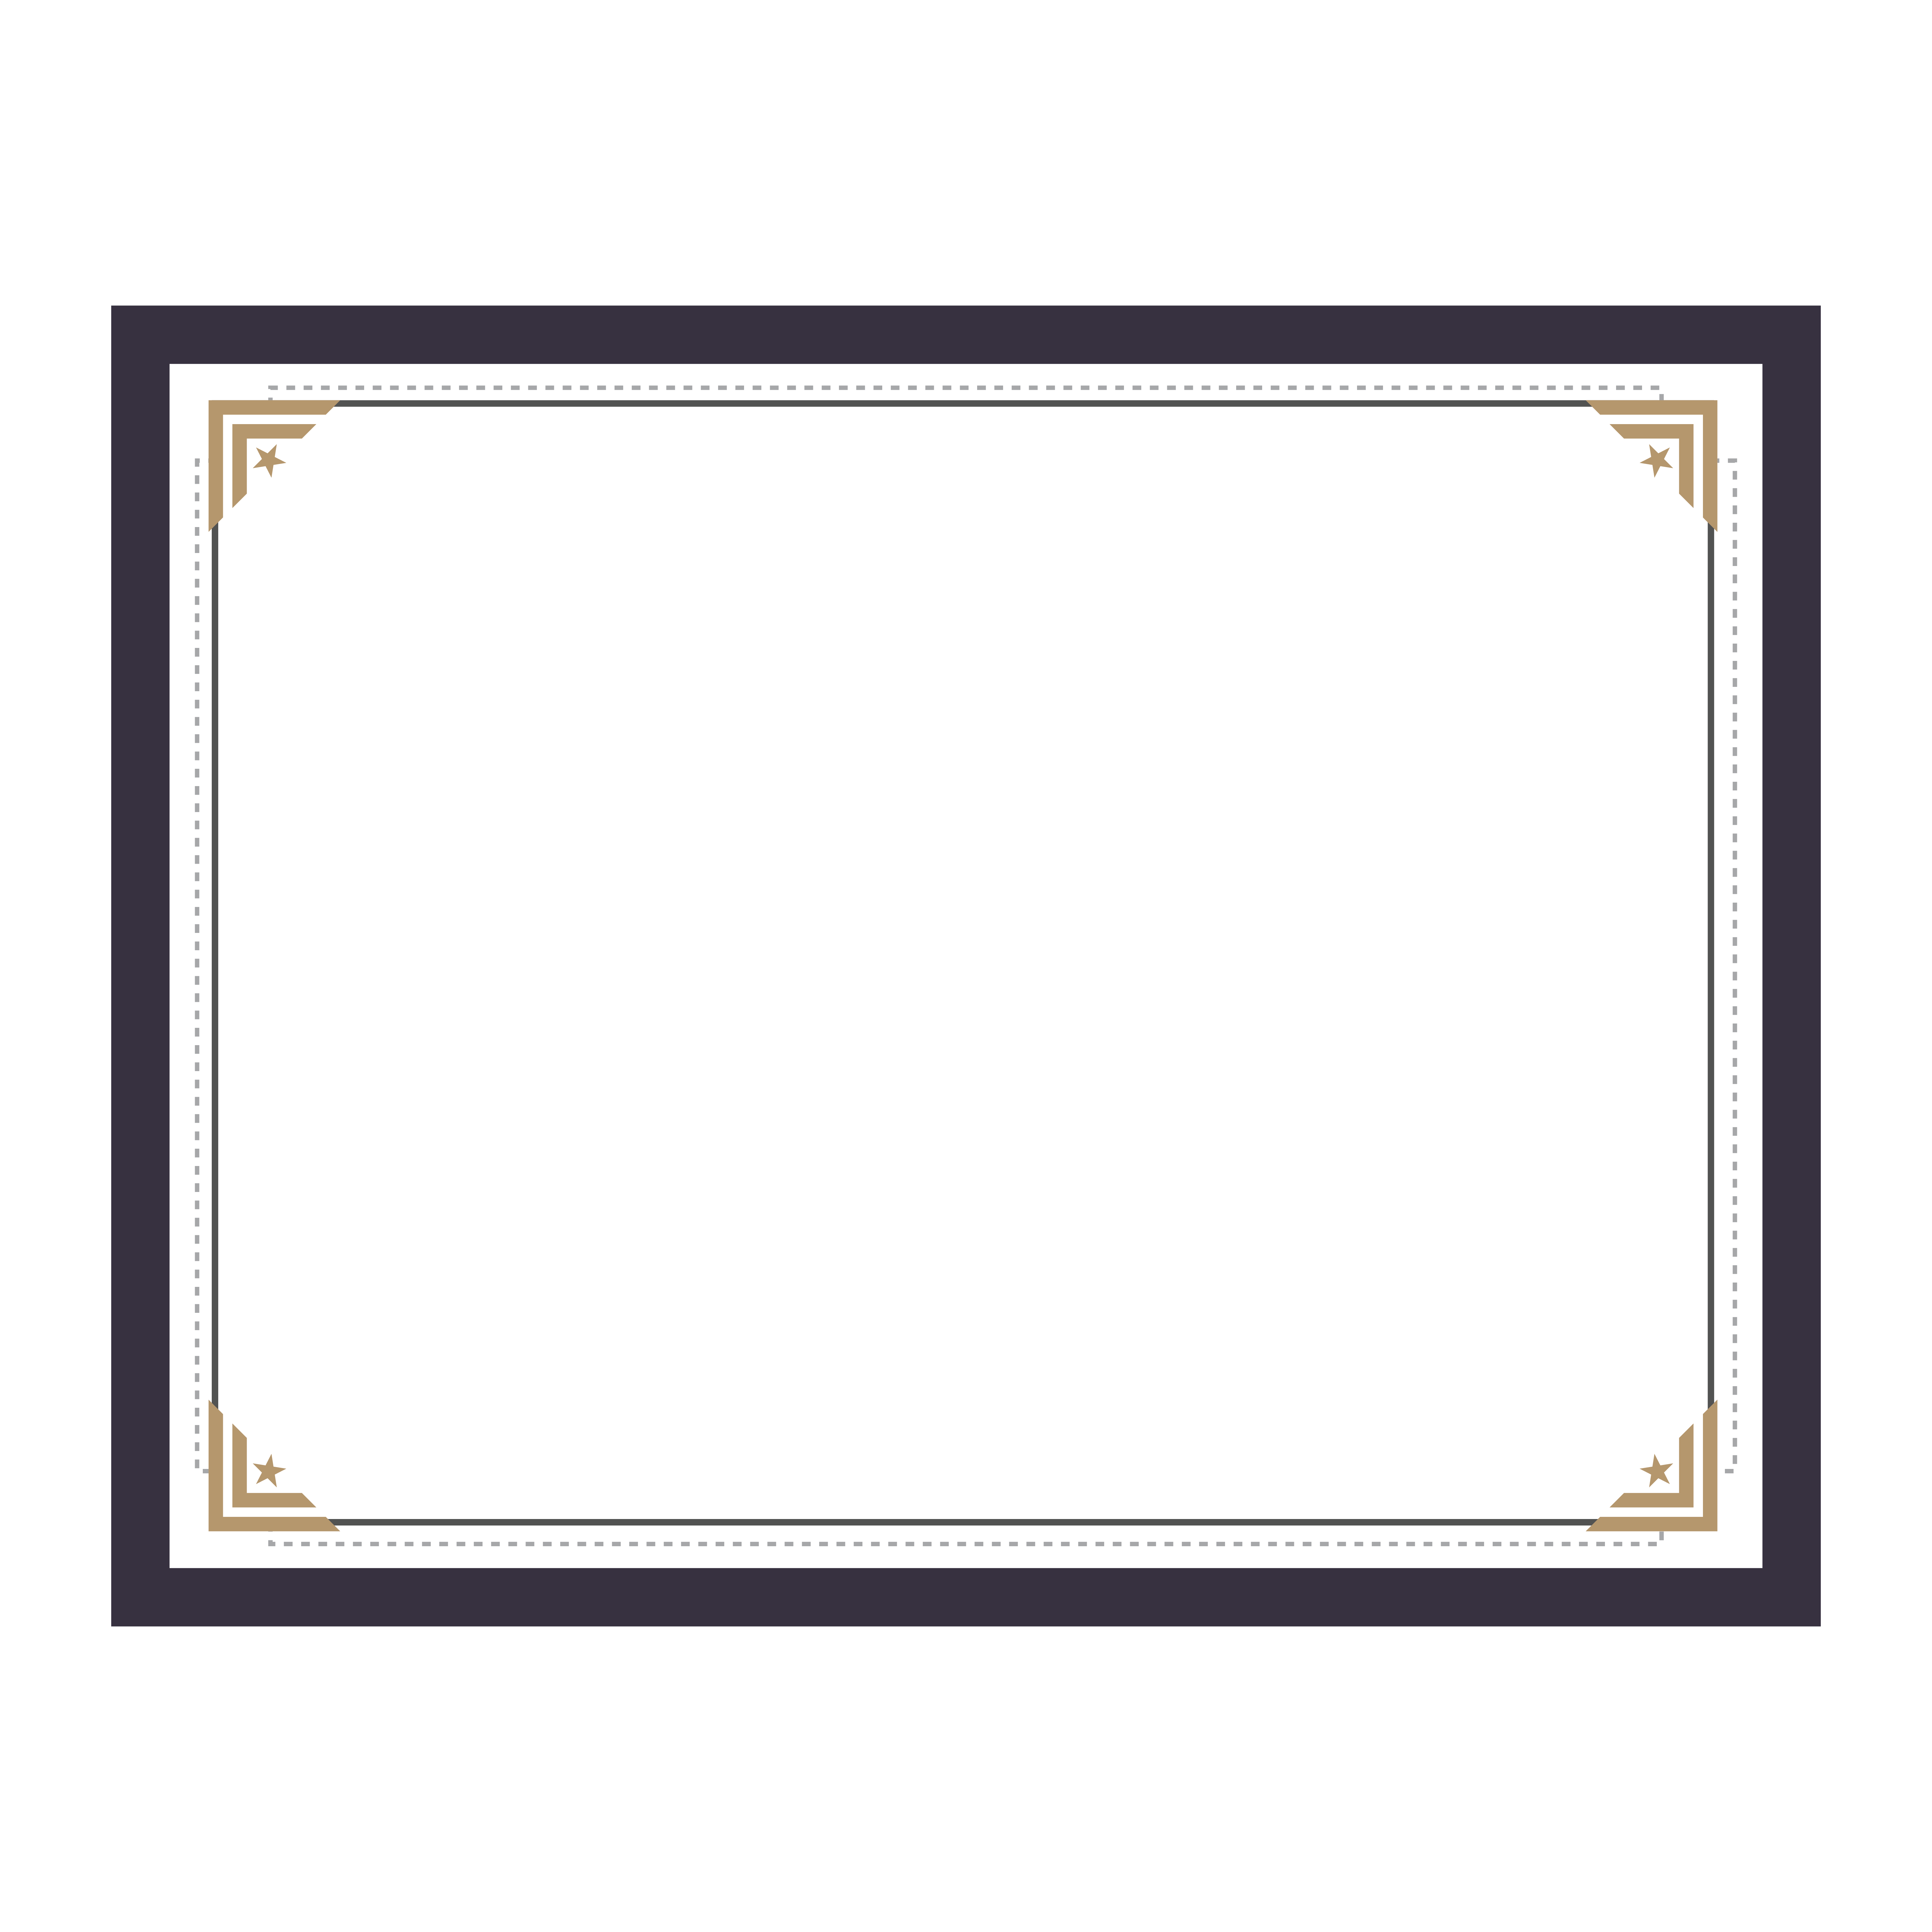 Certificate border design png. Text picture frame pattern